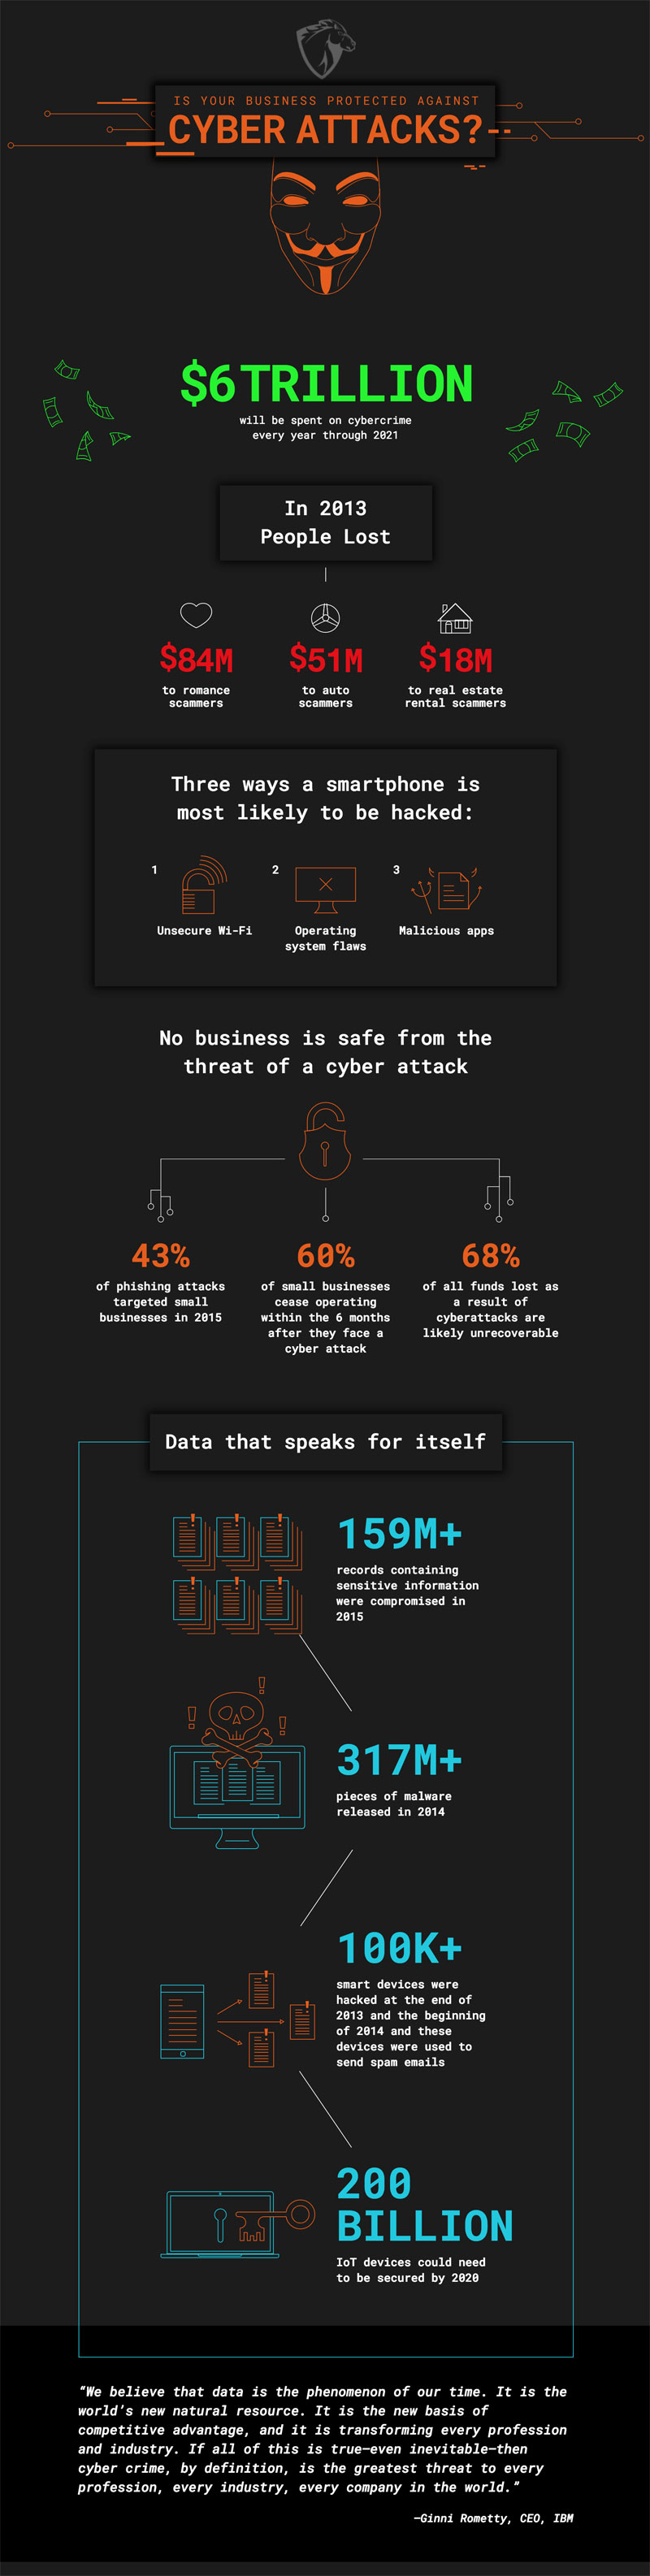 The Trillion Dollar Industry of Cyber Attacks